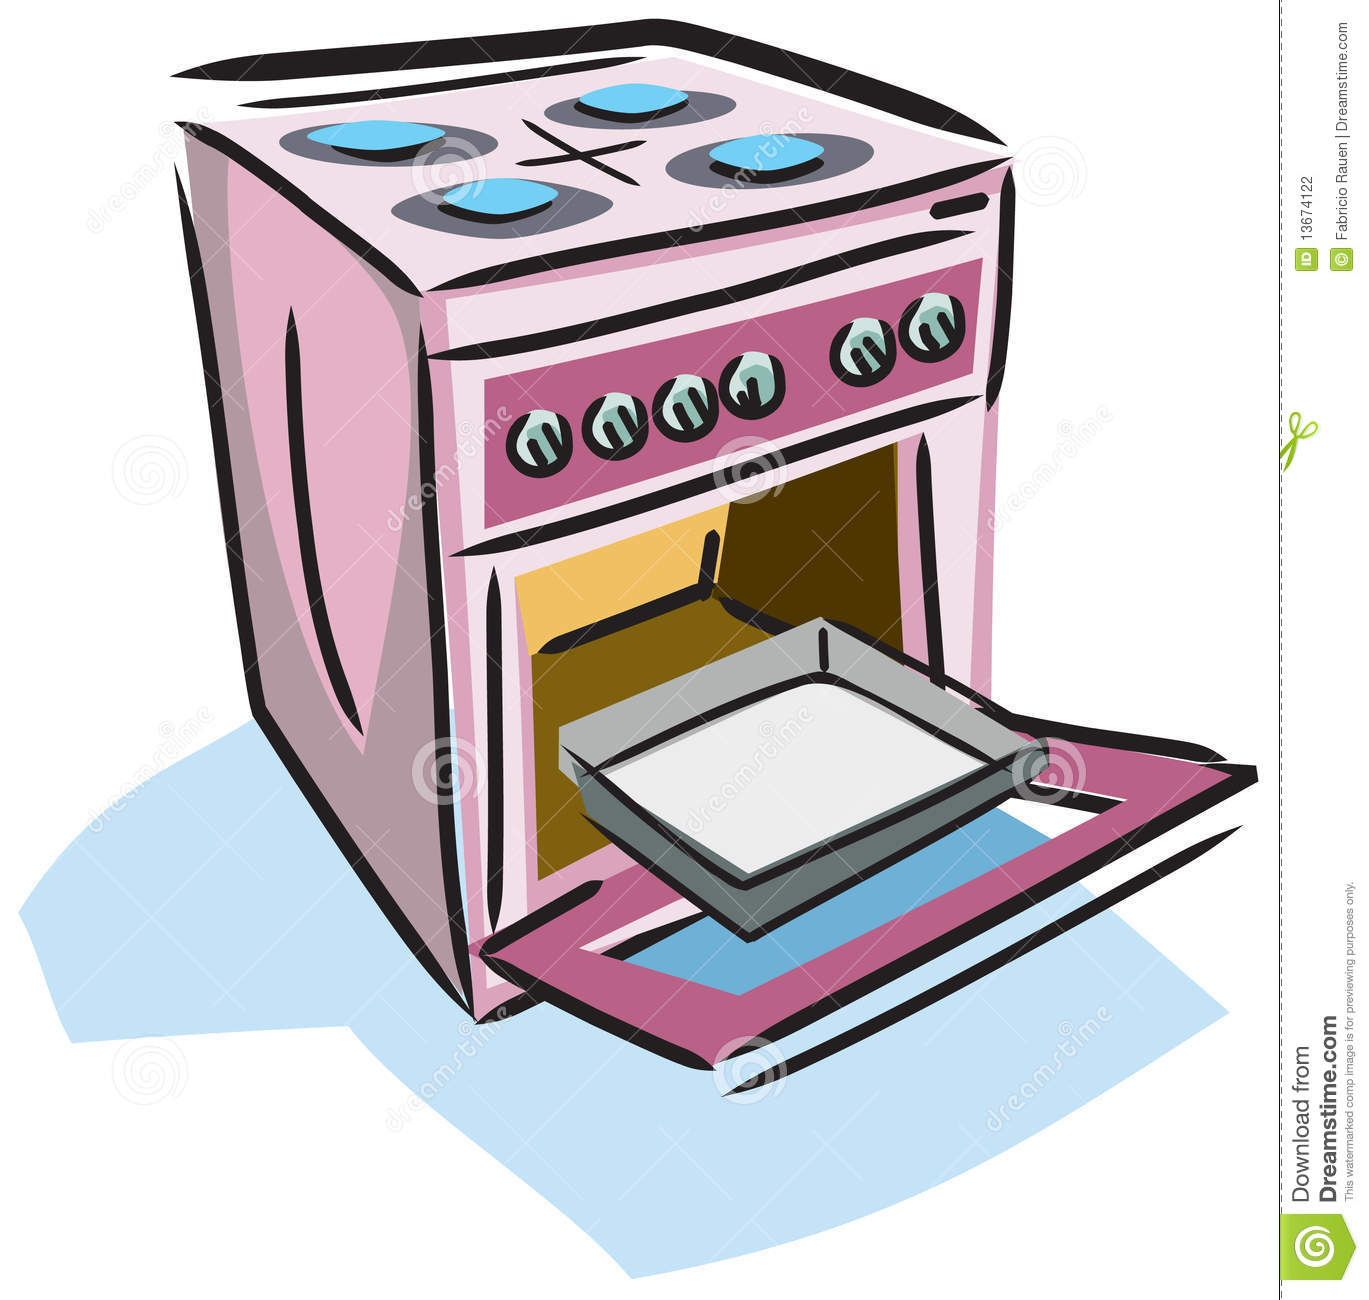 Stock Photography Illustration Stove Image13674122 likewise Stock Illustration Leaning Parts Tree Kids Worksheet Image48713834 further Diy Outdoor Furniture Ideas also Stock Illustration Igloo Illustration Nice Image57848775 also Hydro Pool Design. on seats for house